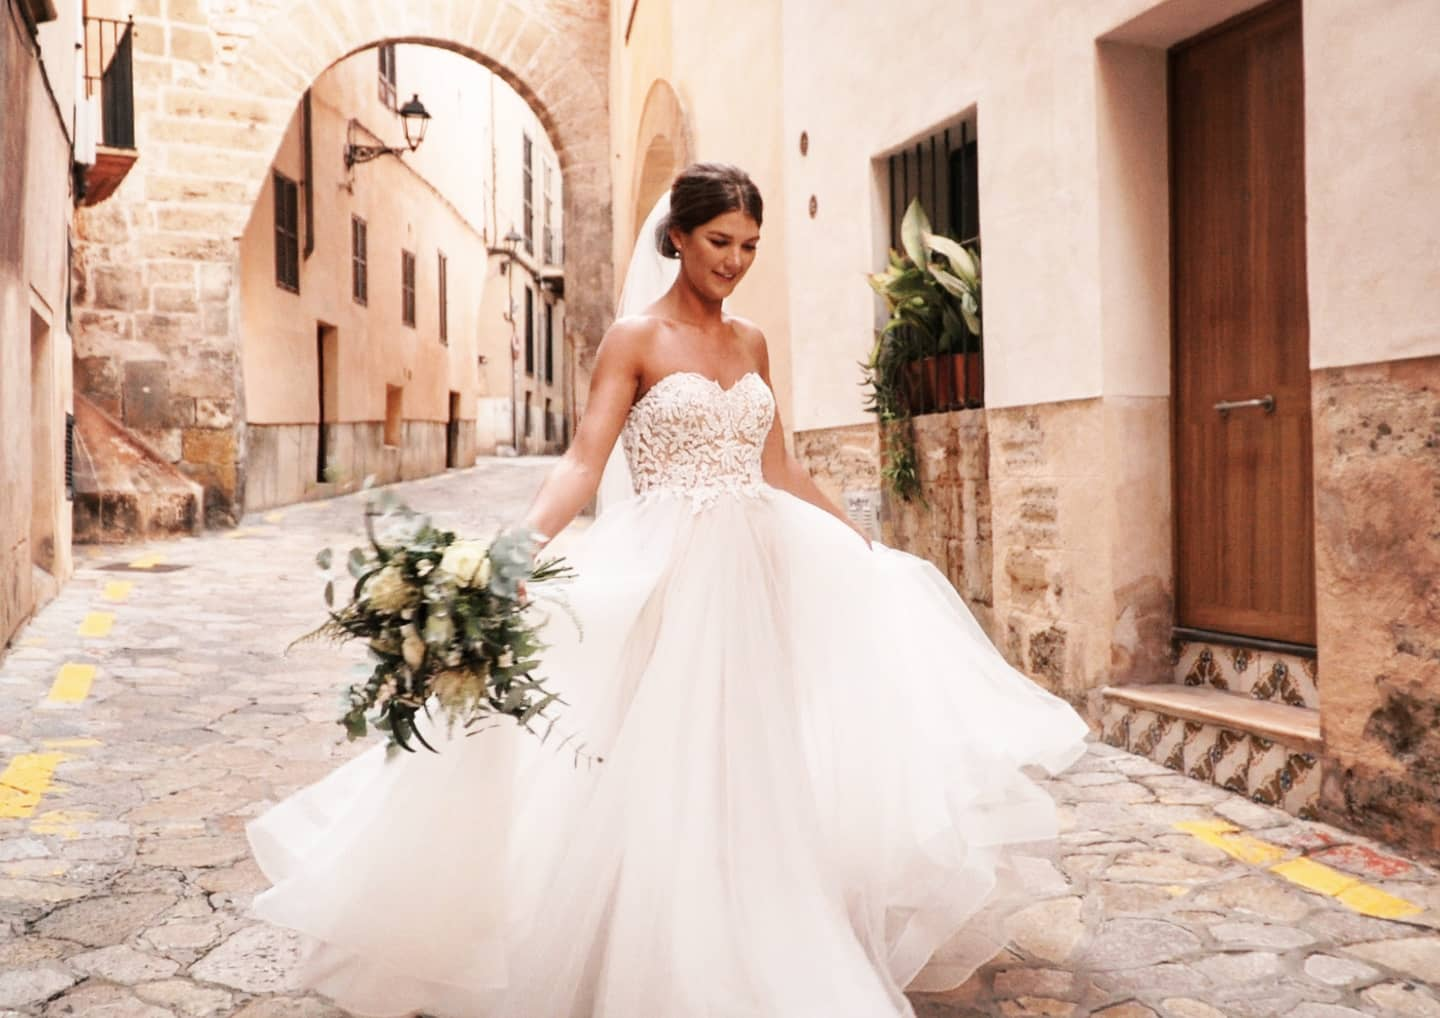 A bride in the old town, Lluís, wedding videographer